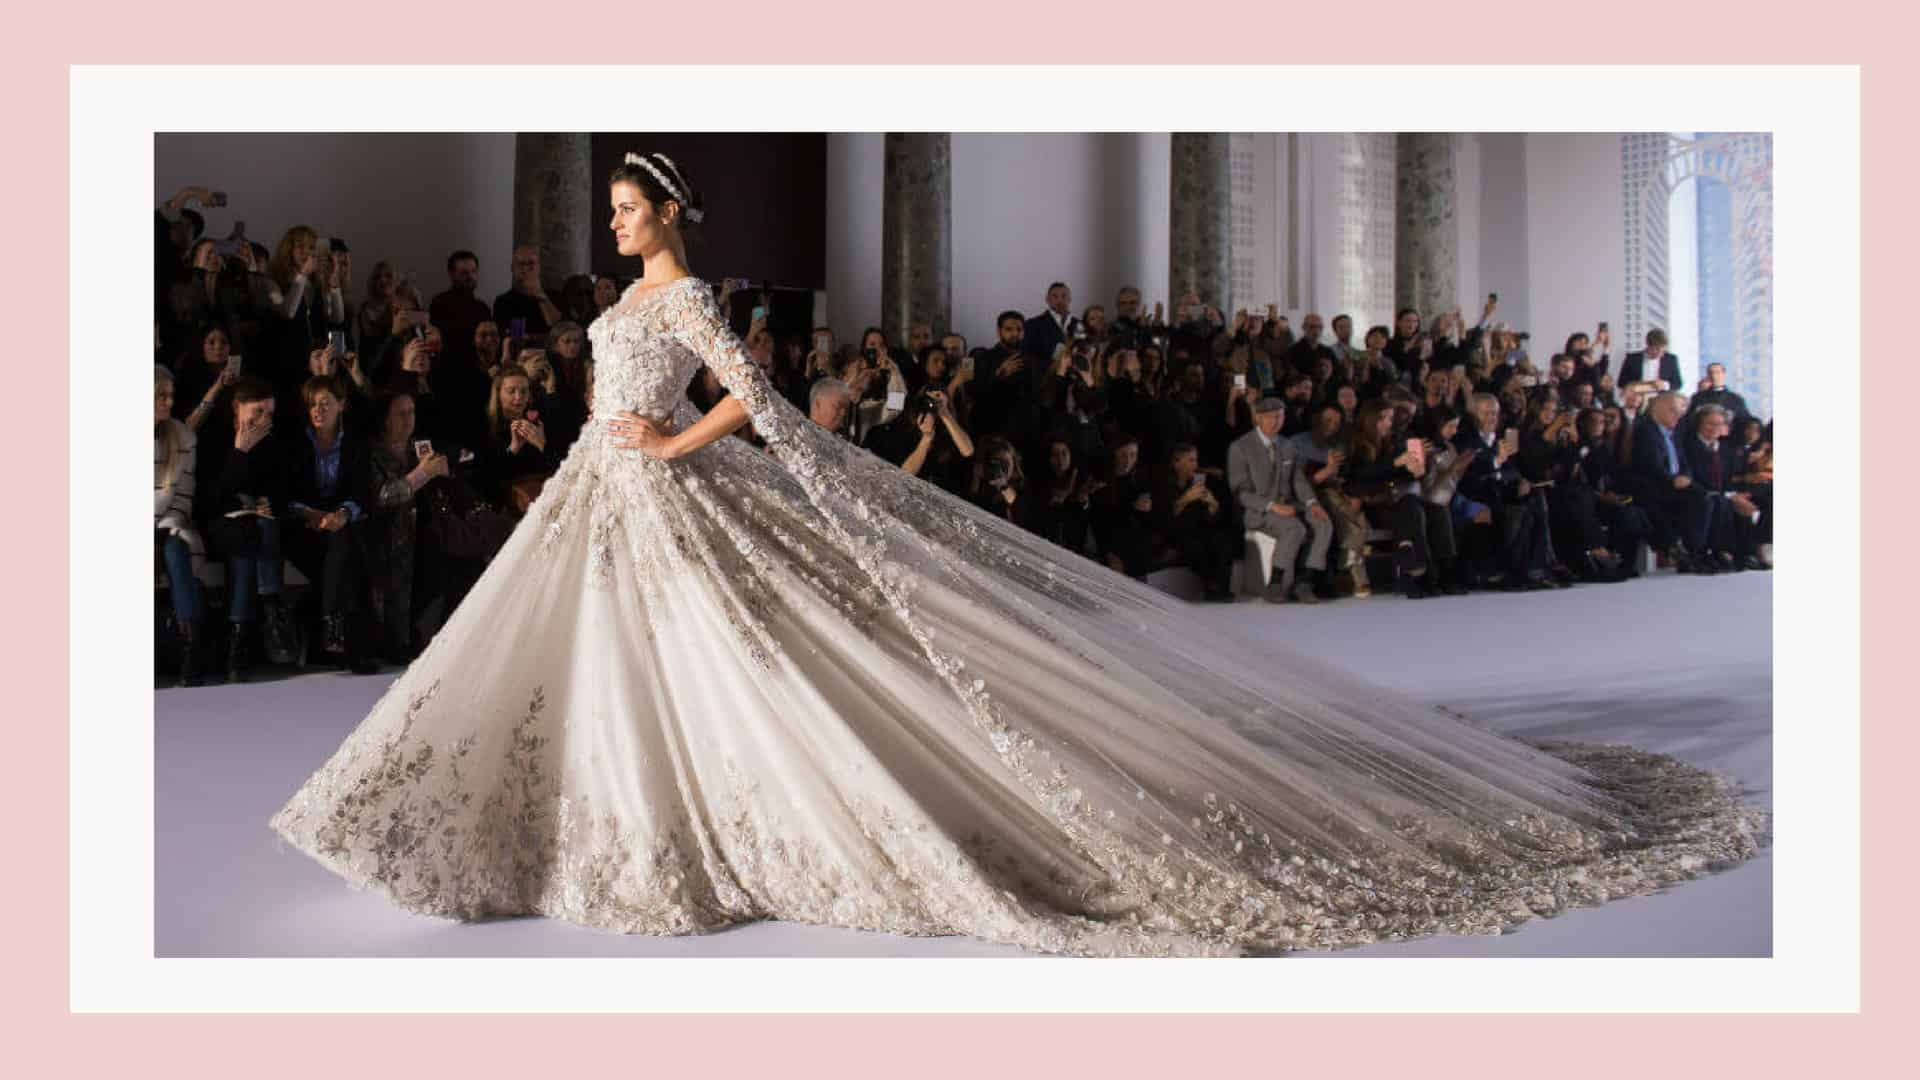 woman in wedding dress walking down runway